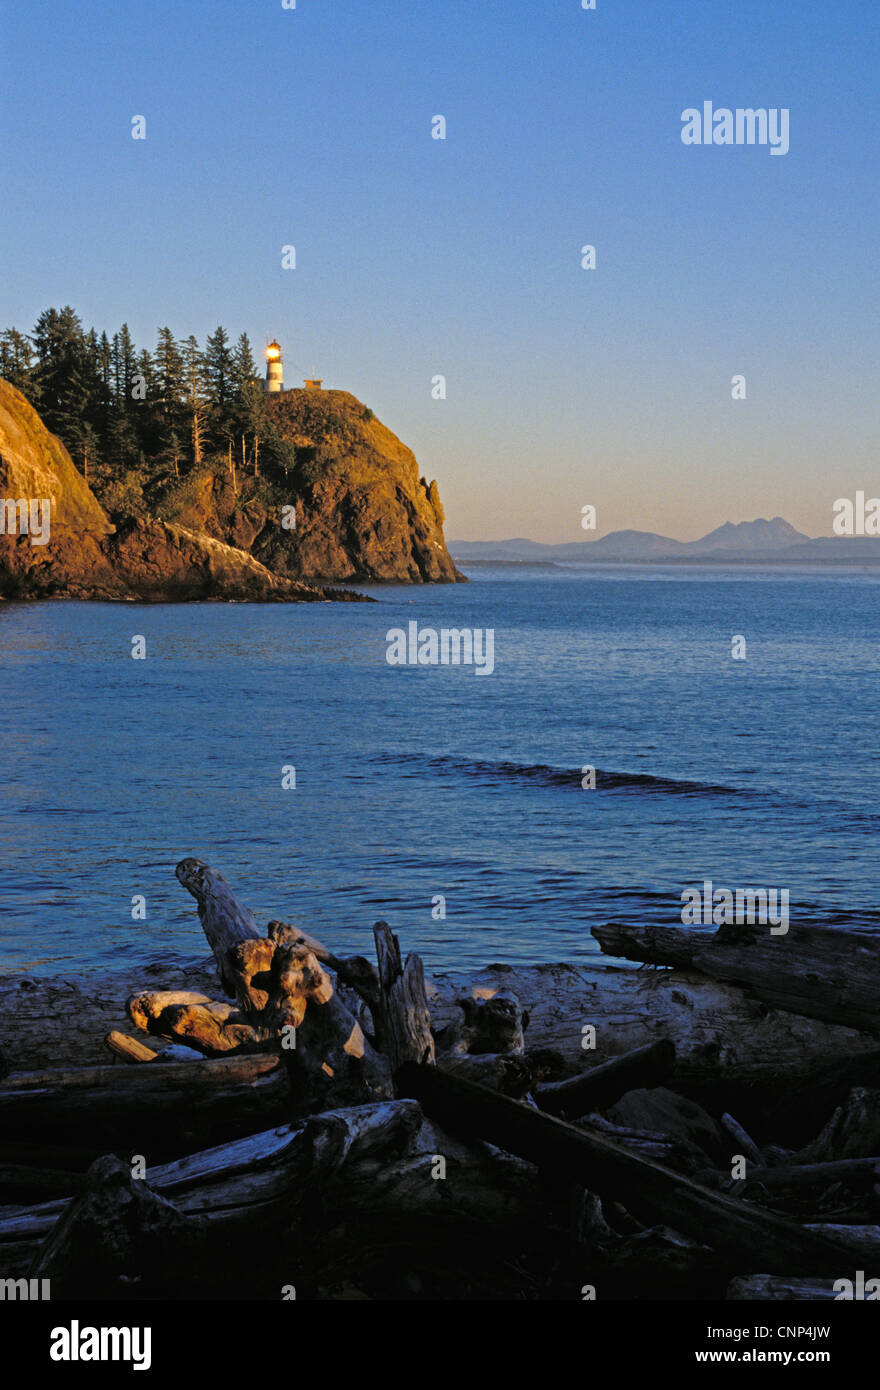 Cape Disappointment Lighthouse at the mouth of the Columbia River; Cape Disappointment State Park, Washington. - Stock Image